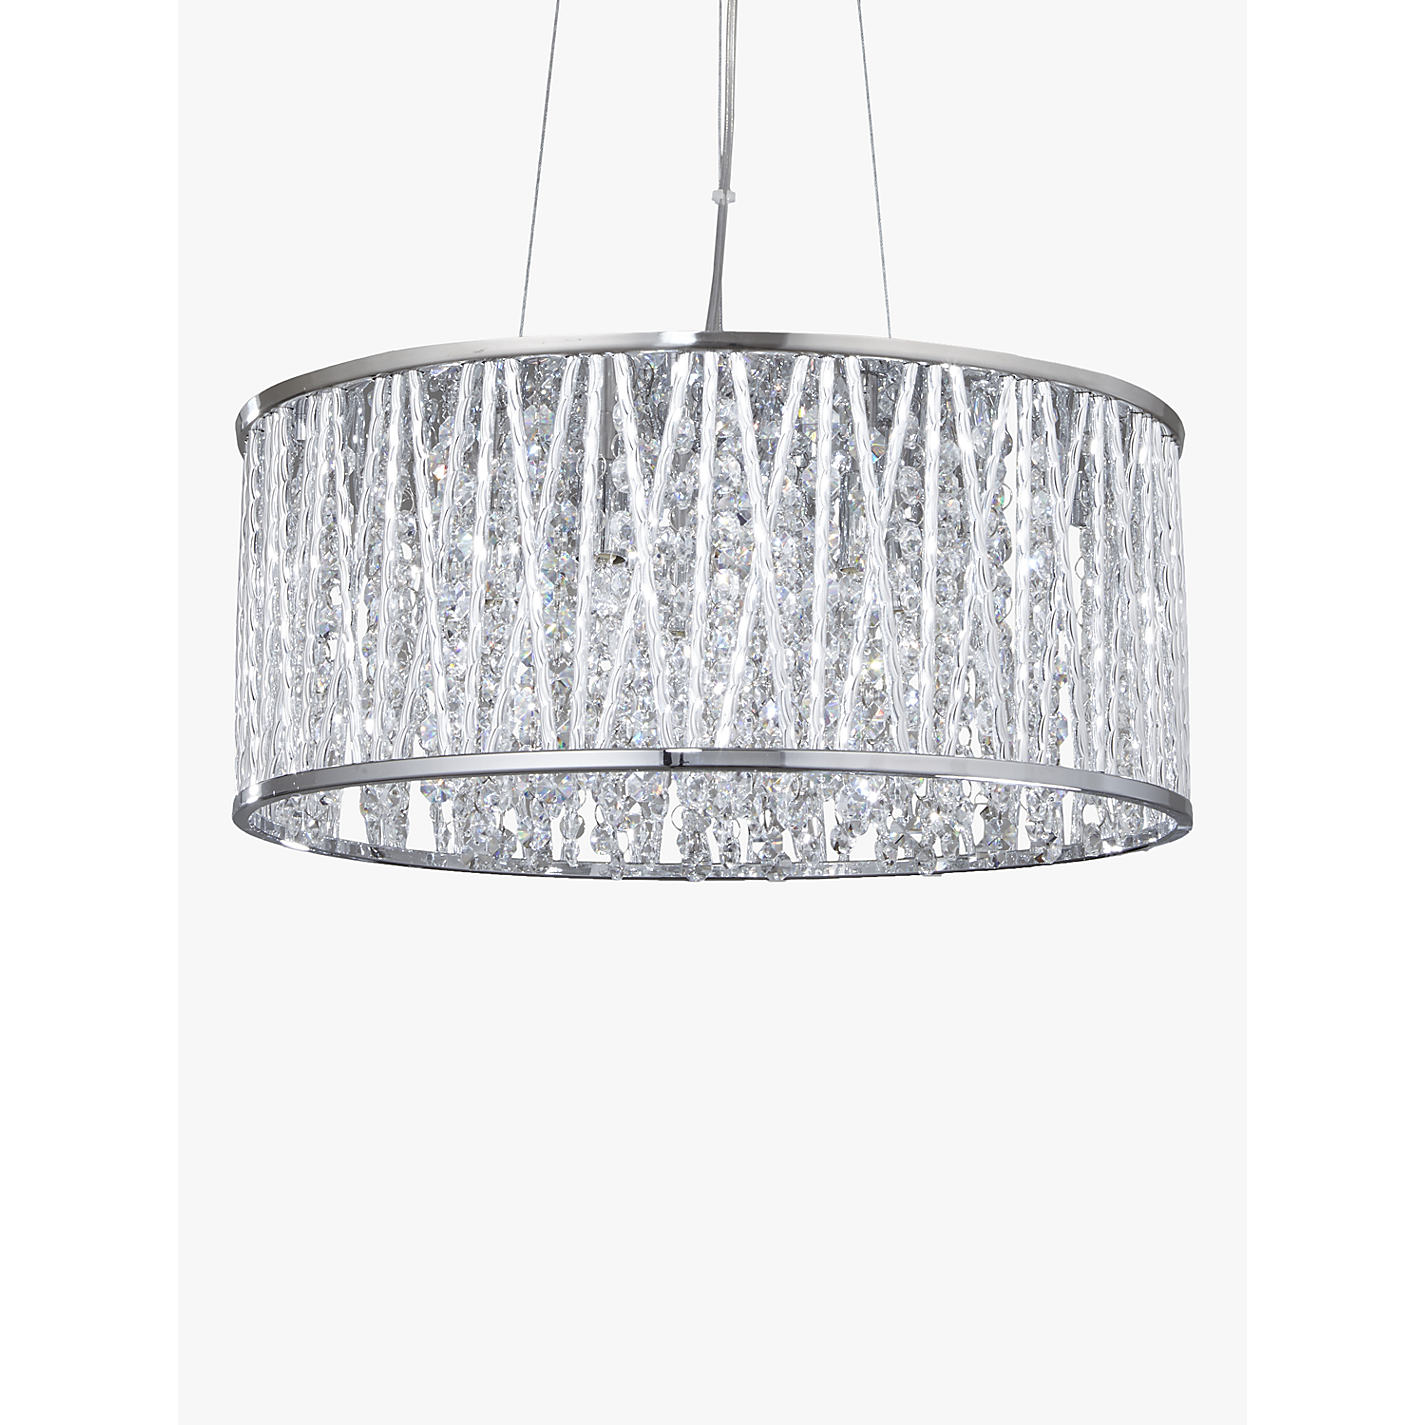 Buy john lewis emilia drum crystal pendant light john lewis buy john lewis emilia drum crystal pendant light online at johnlewis aloadofball Choice Image